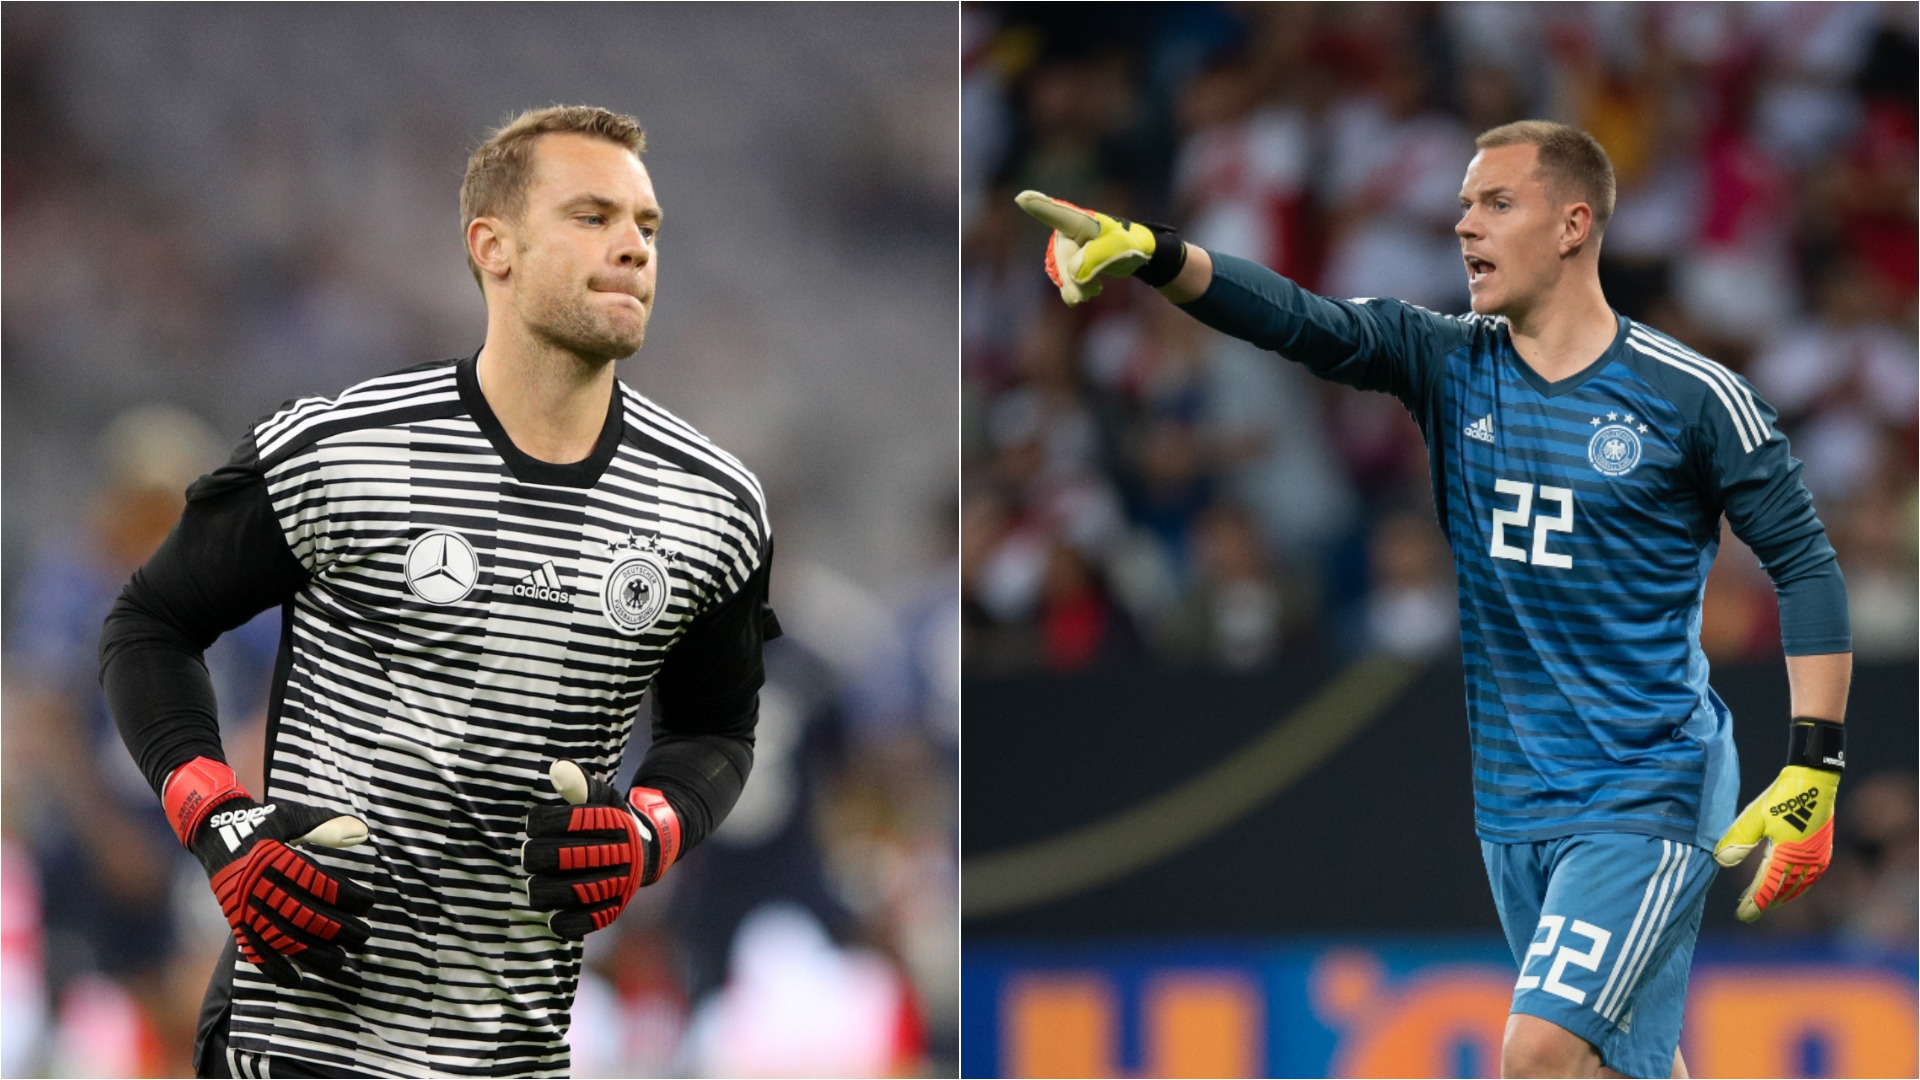 Ter Stegen should start ahead of Neuer for Germany – Matthaus